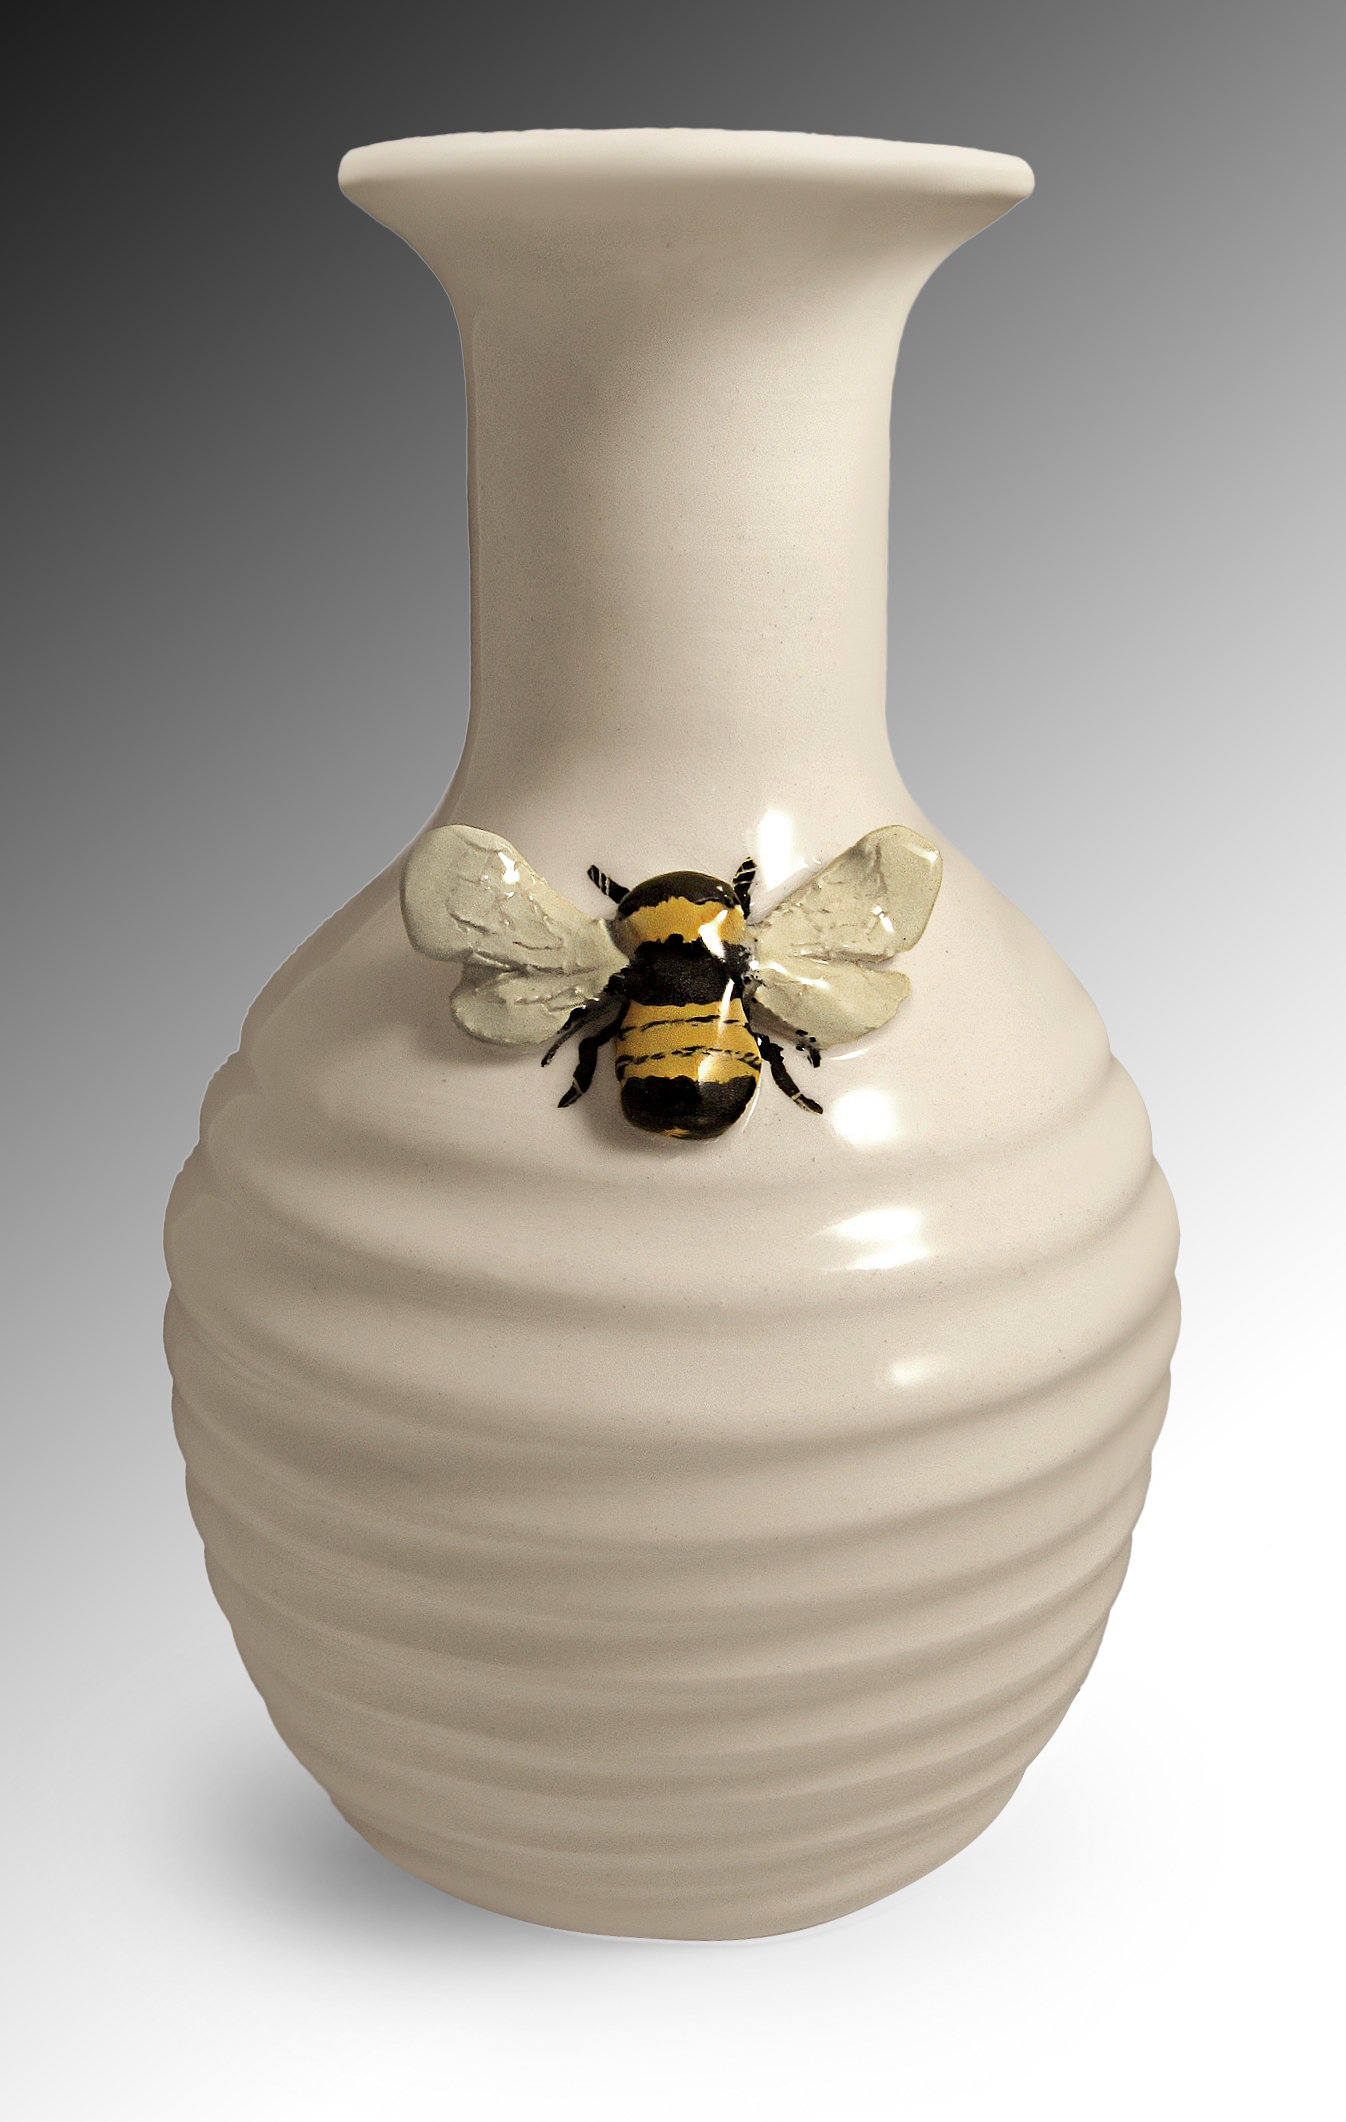 Http Www Artfulhome Com Product Ceramic Vase Bee Vase 75472